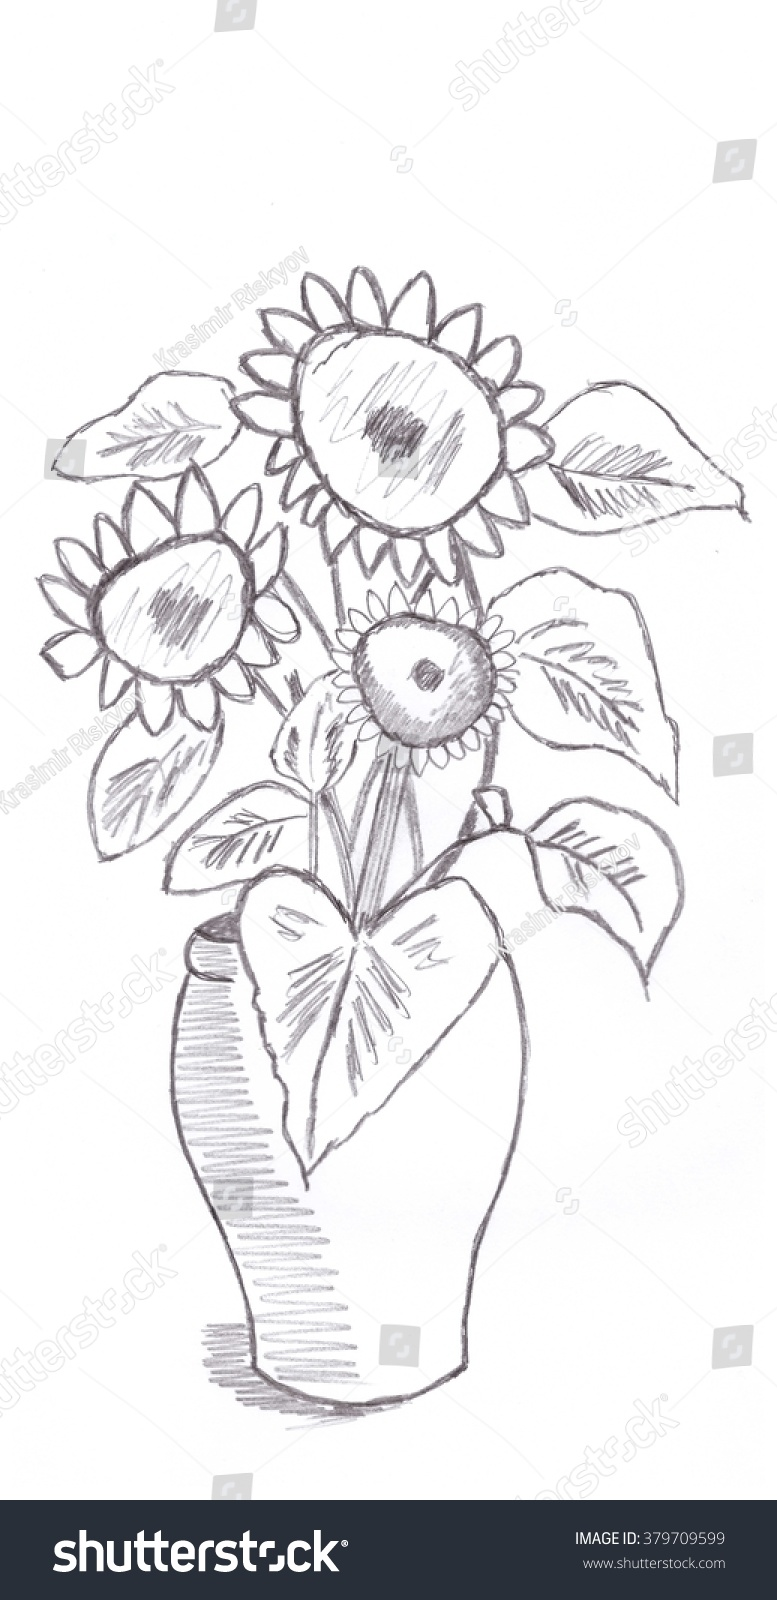 Vase sunflower sketch pencil drawing stock illustration 379709599 vase sunflower sketch pencil drawing reviewsmspy